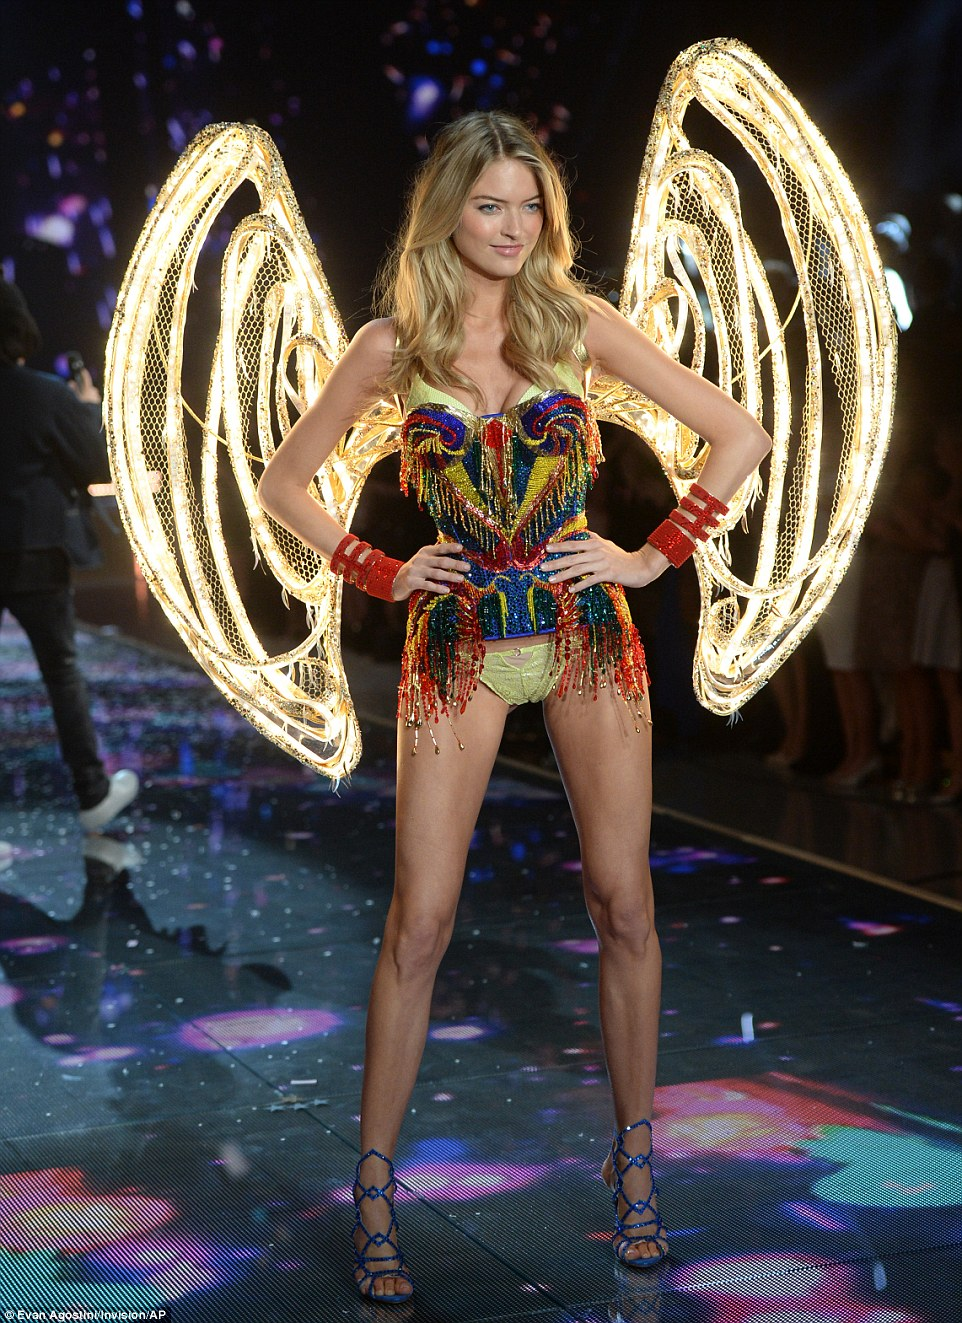 2E53360F00000578-3312676-Bright_angel_Martha_Hunt_wore_a_pair_of_glowing_lit_wings_that_l-a-68_1447246962999